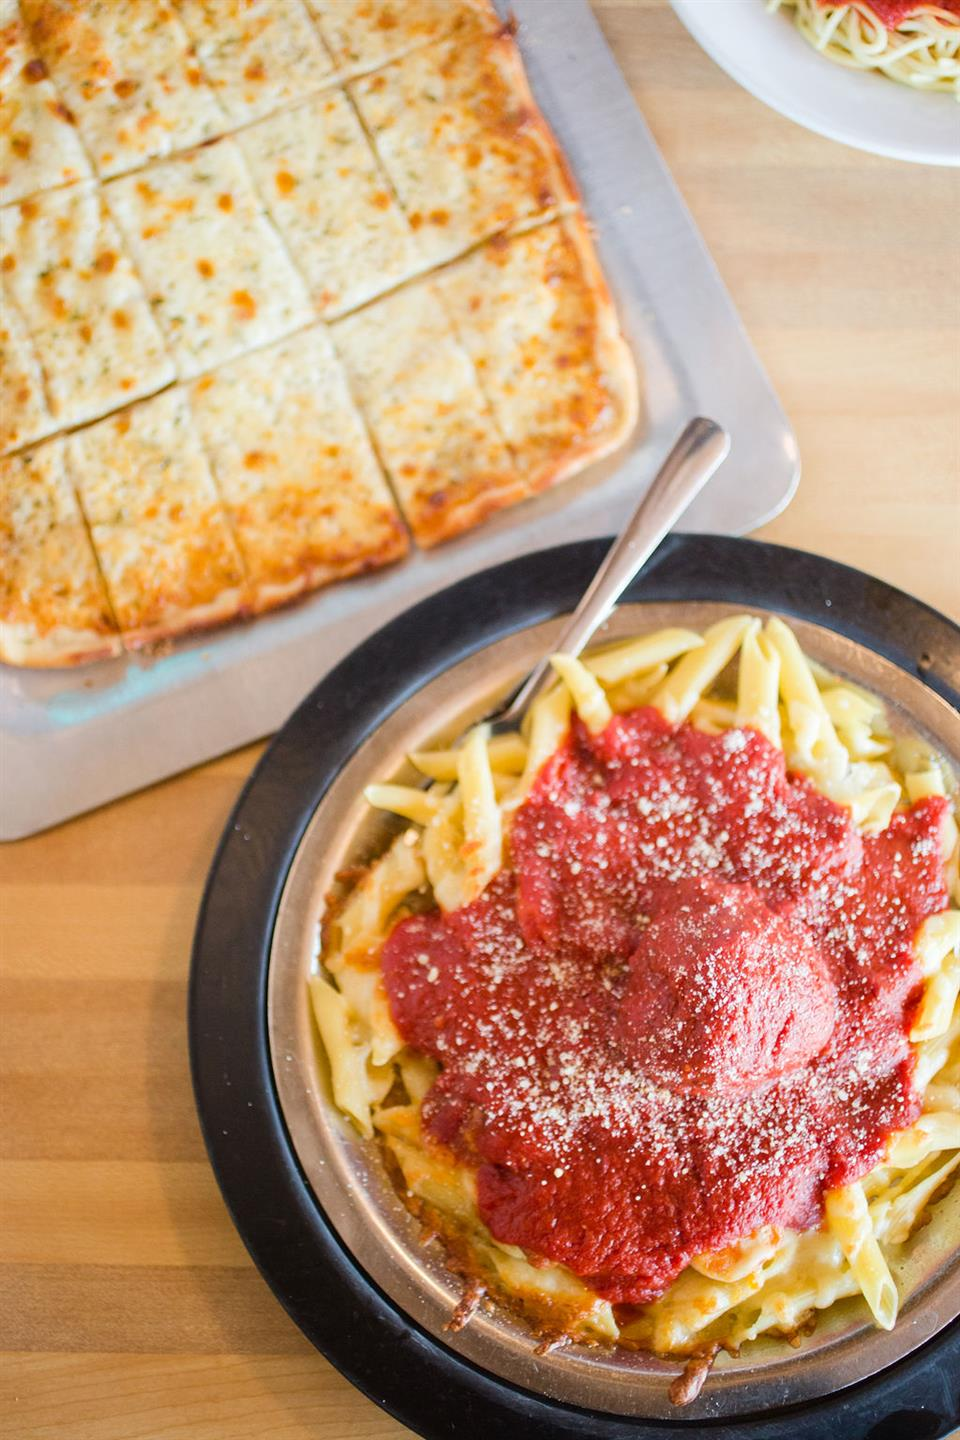 spaghetti with meatballs and a flatbread with cheese